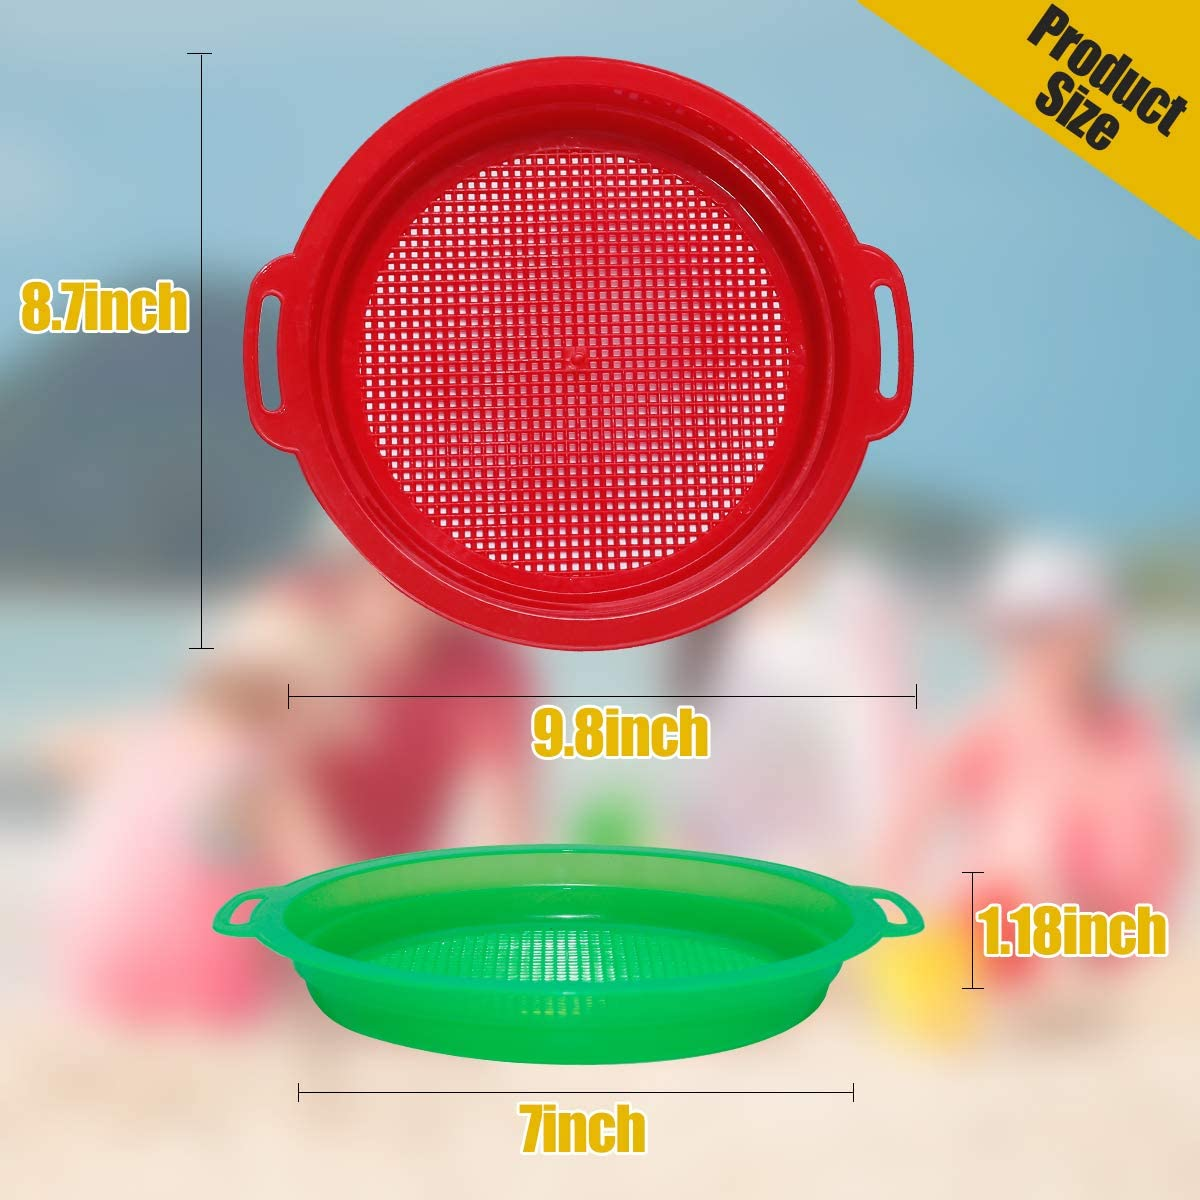 Holady 4 Pack Multicolor Sand Sifter Sieves,Plastic Sand Sifter for Backyard Park Party Favor Sand and Beach 4 Colors